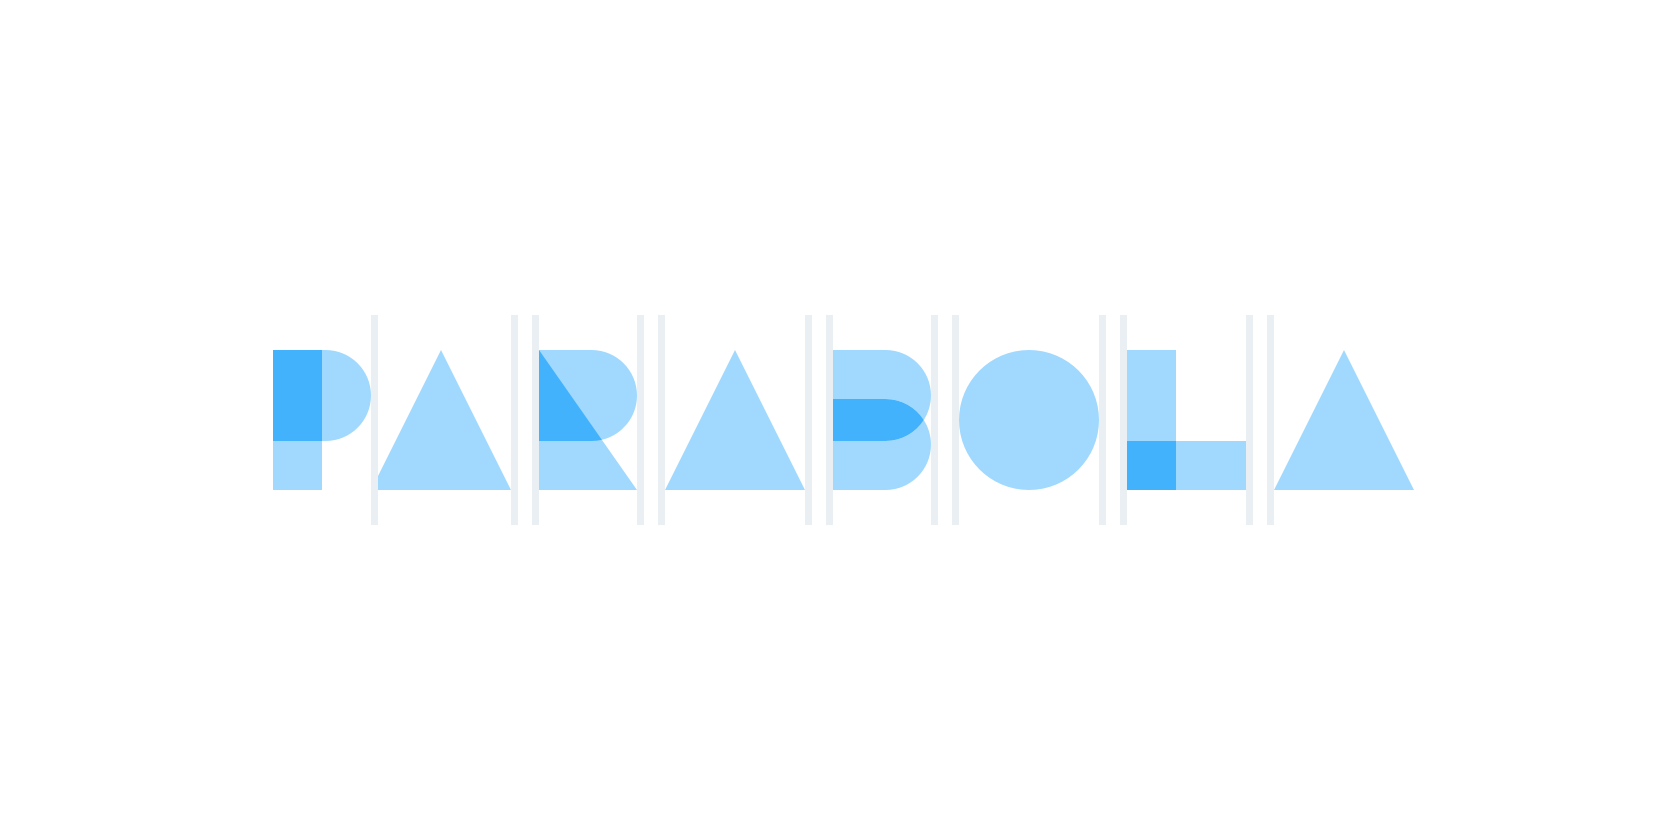 What is Parabola.io?